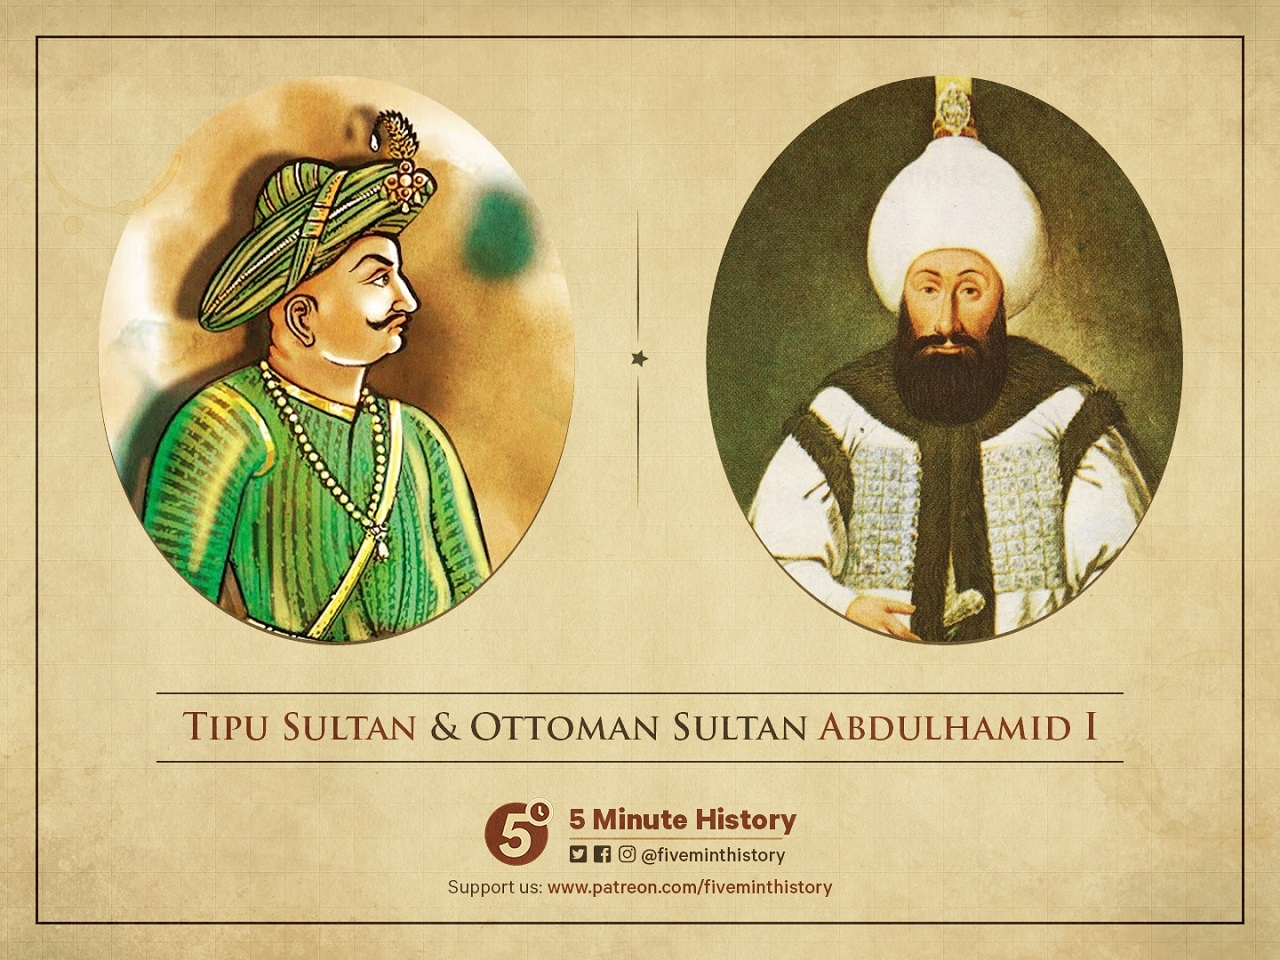 Tipu Sultan's relations with the Ottoman Empire